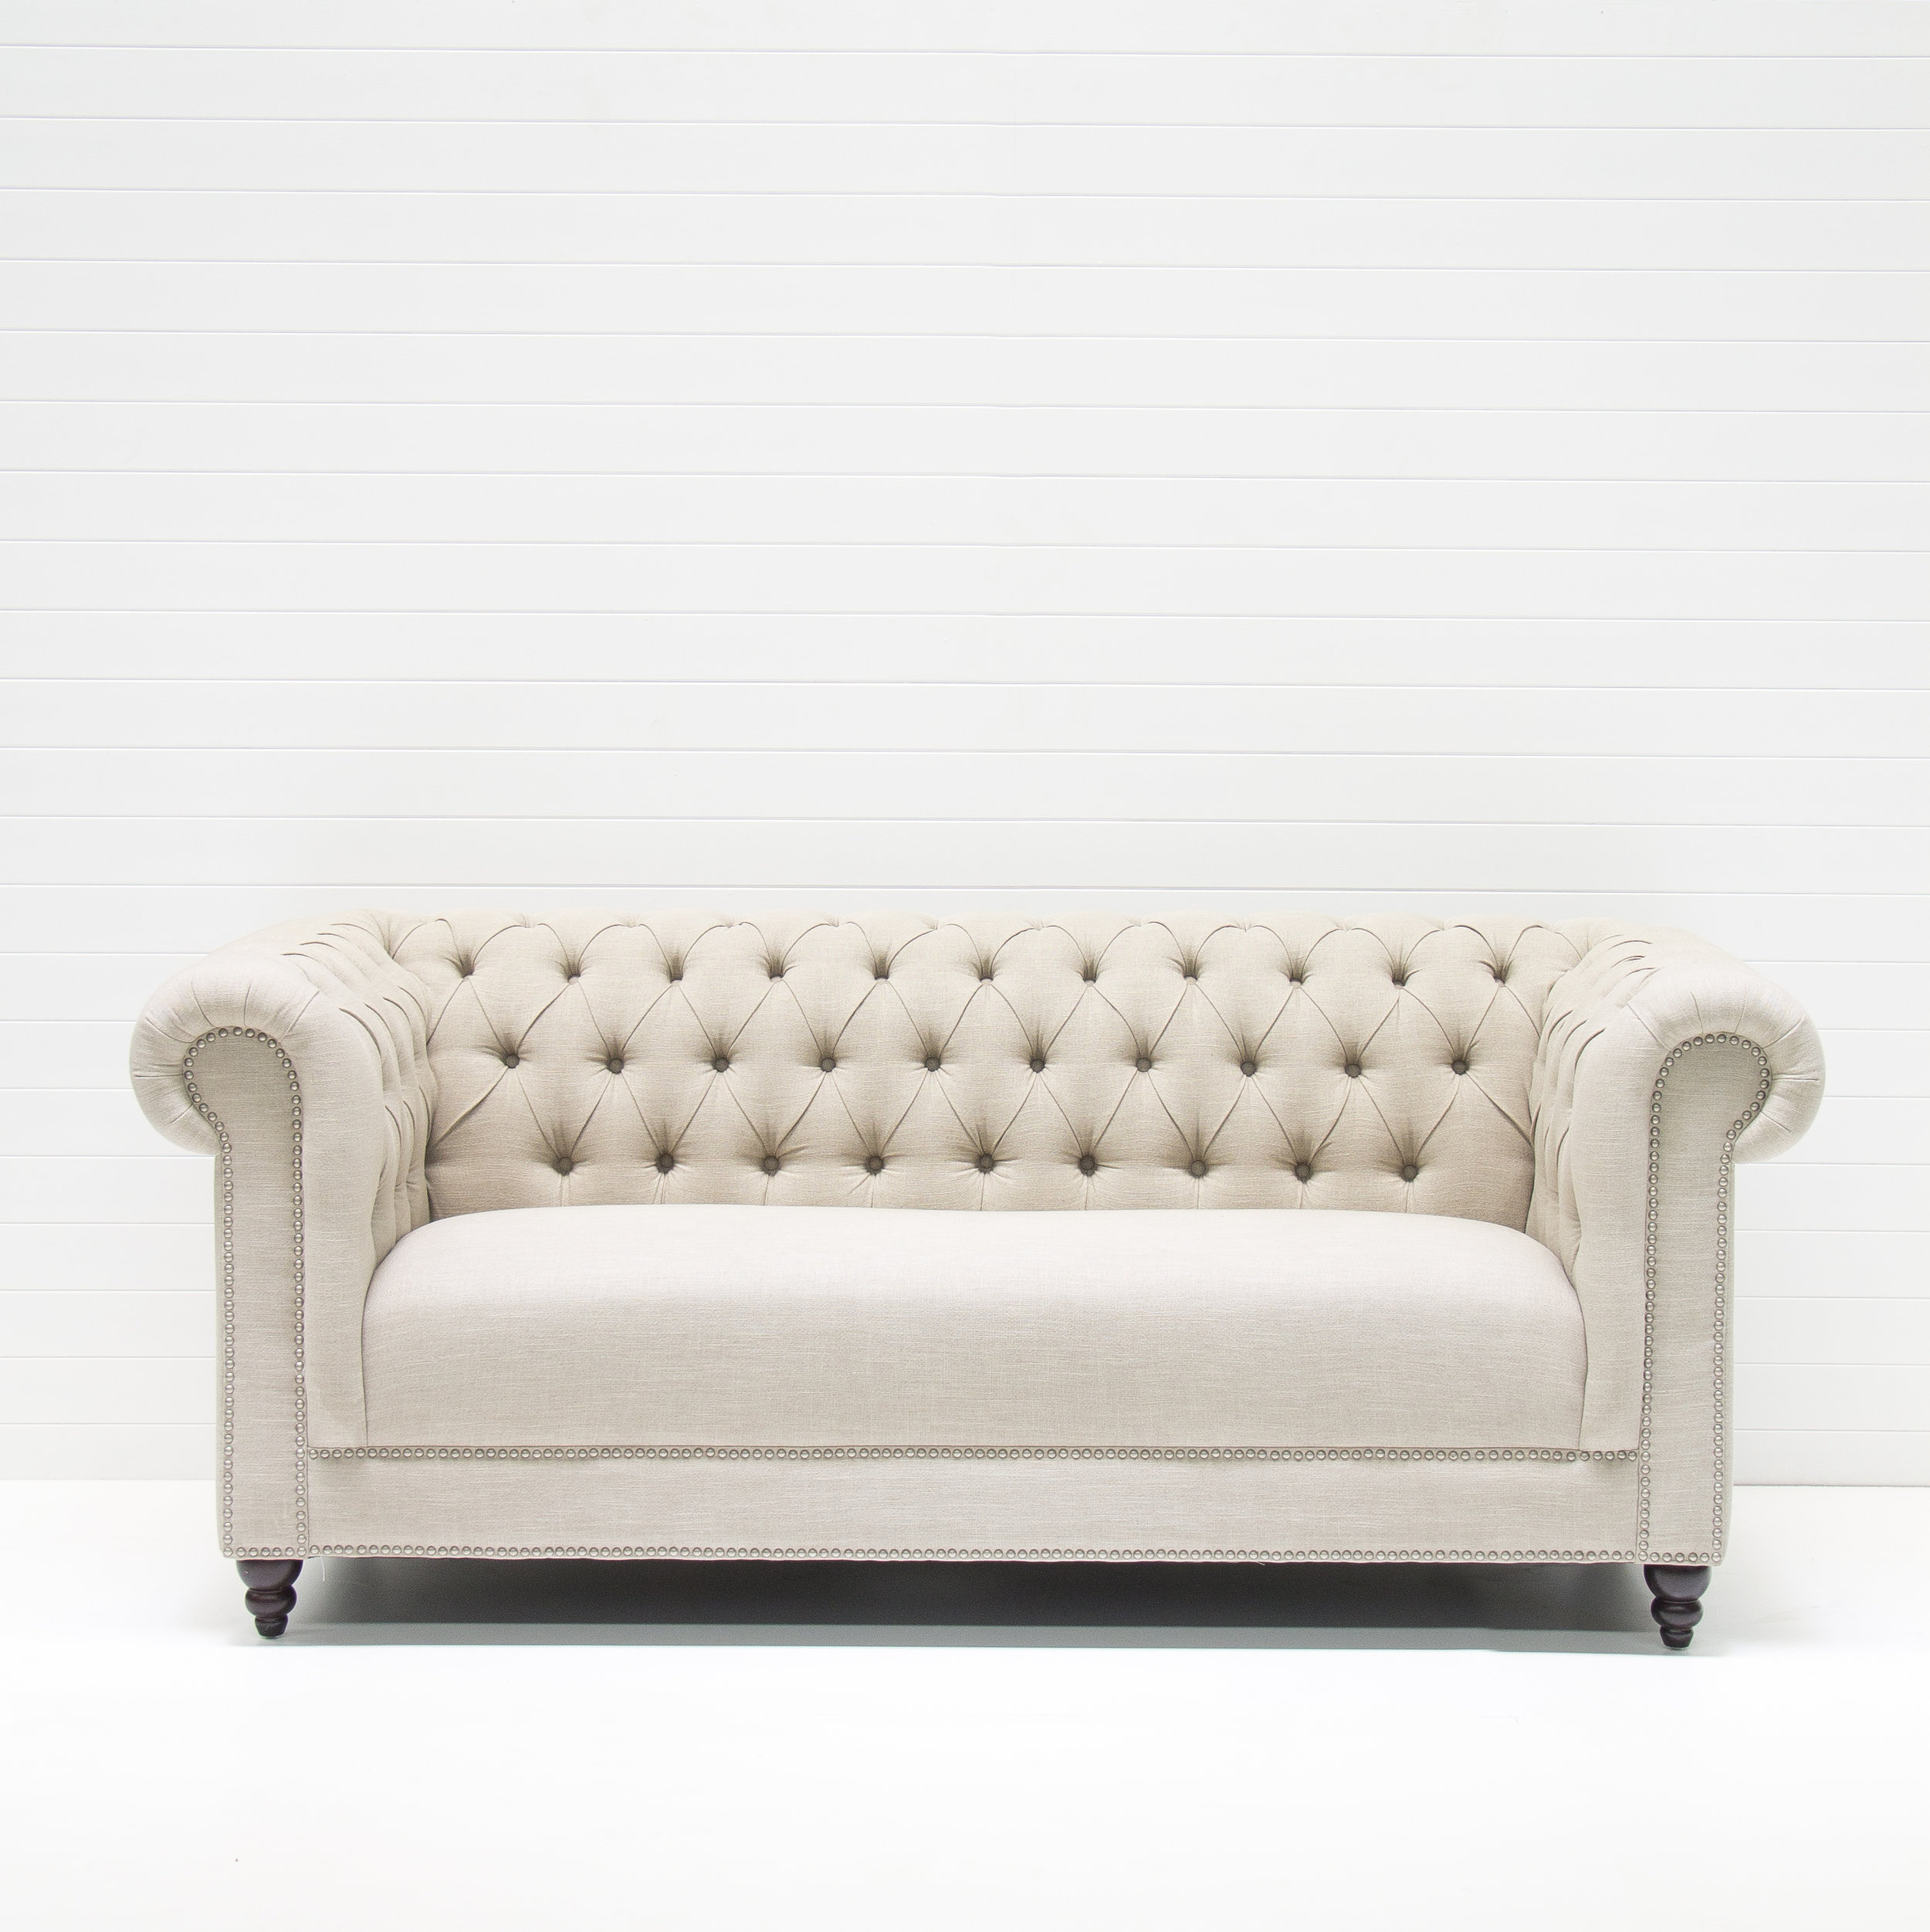 FRENCH STUDDED SOFA